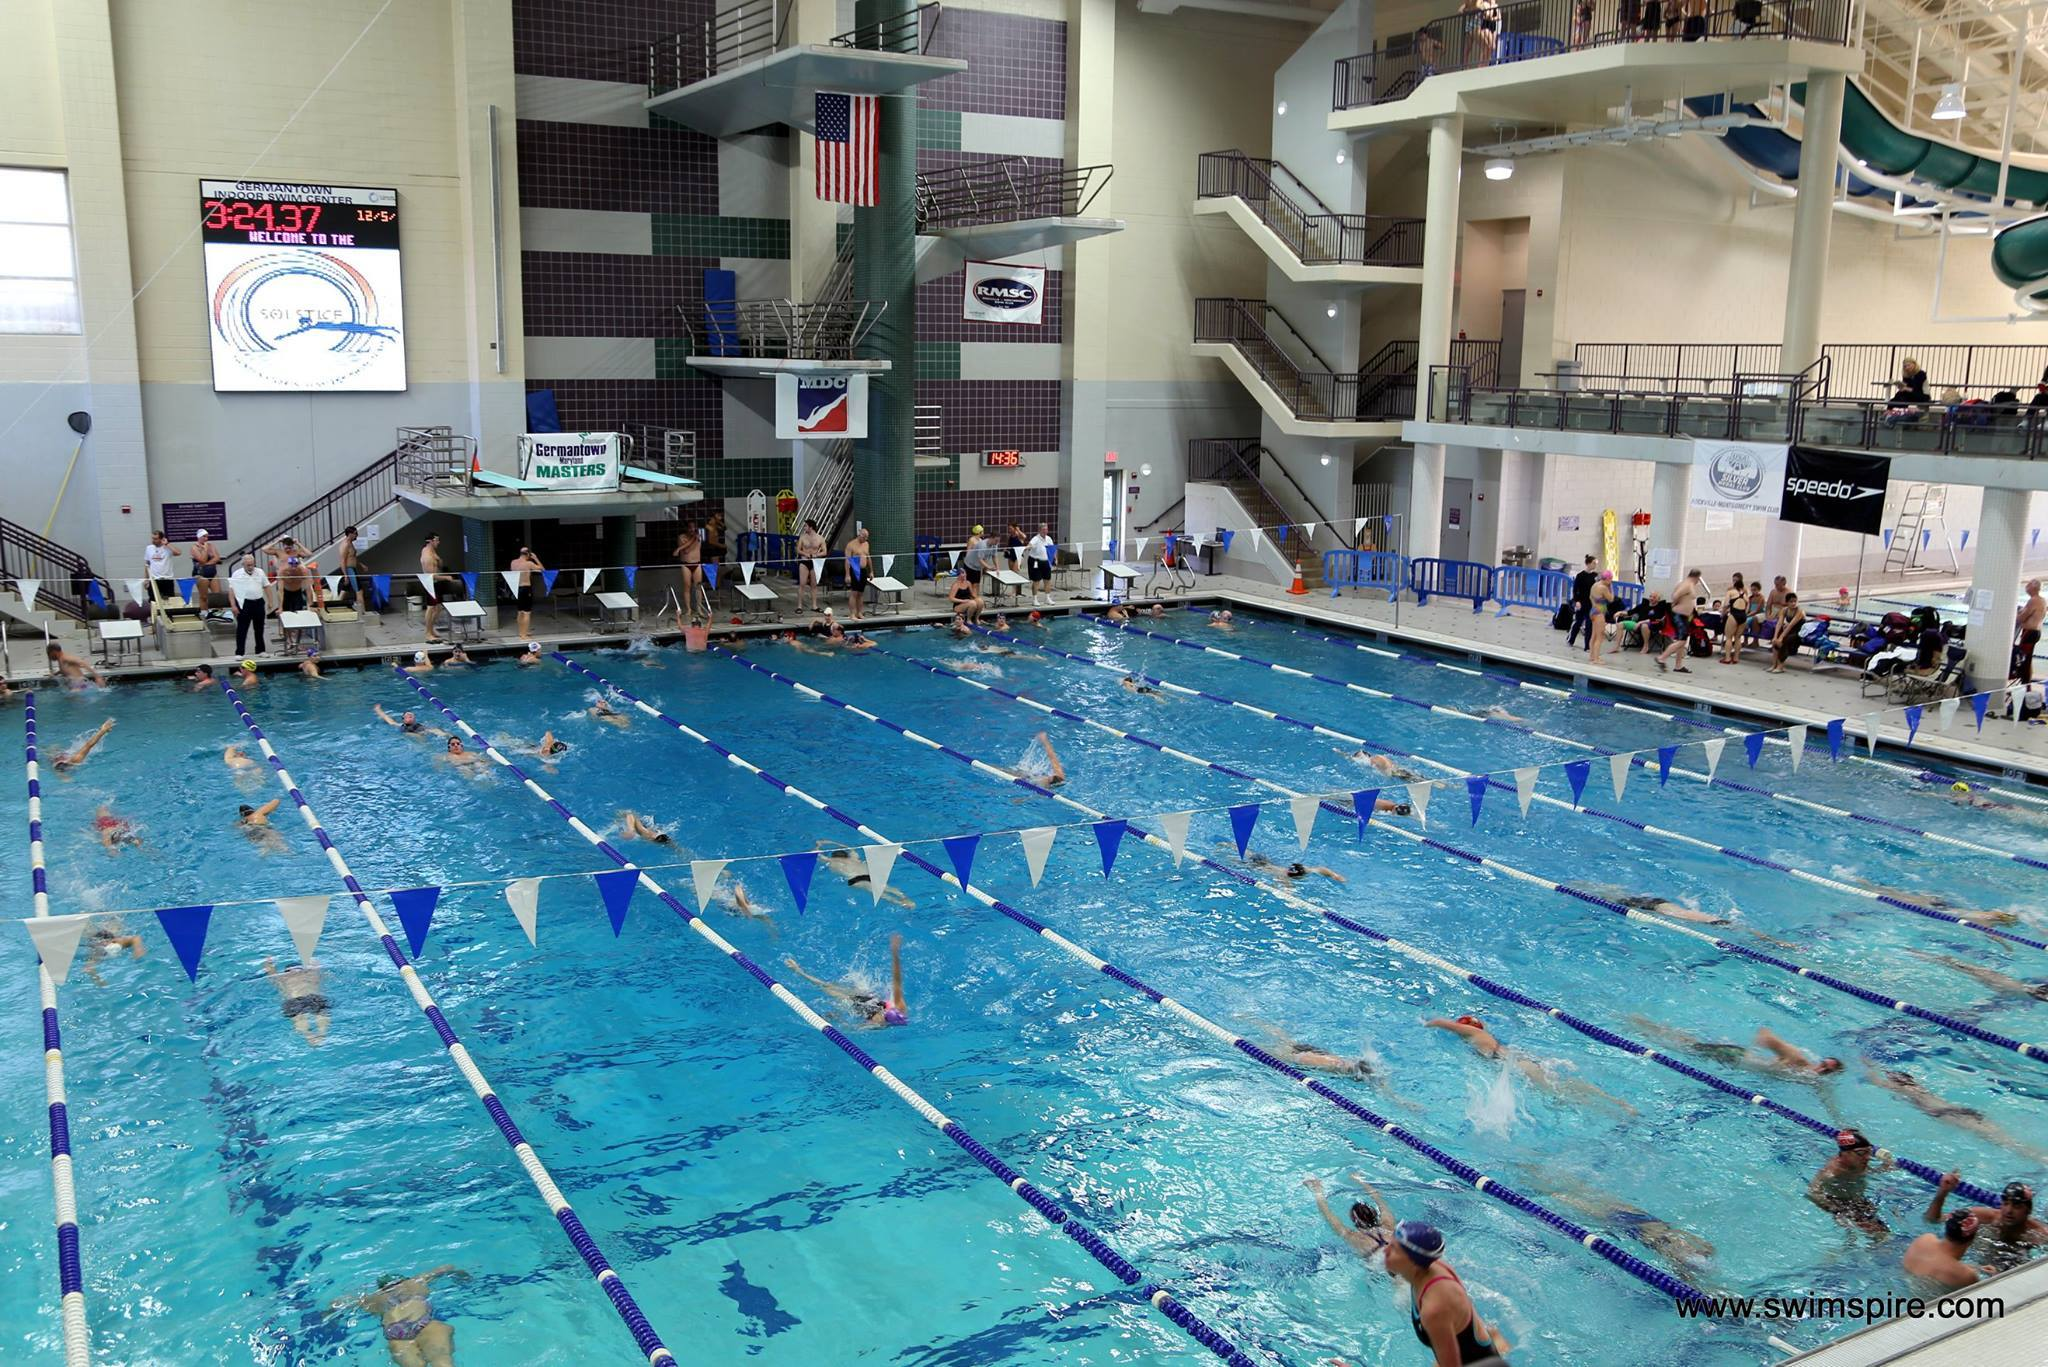 A tradition continues 4th annual germantown masters - Swimming pool swimming pool swimming pool ...